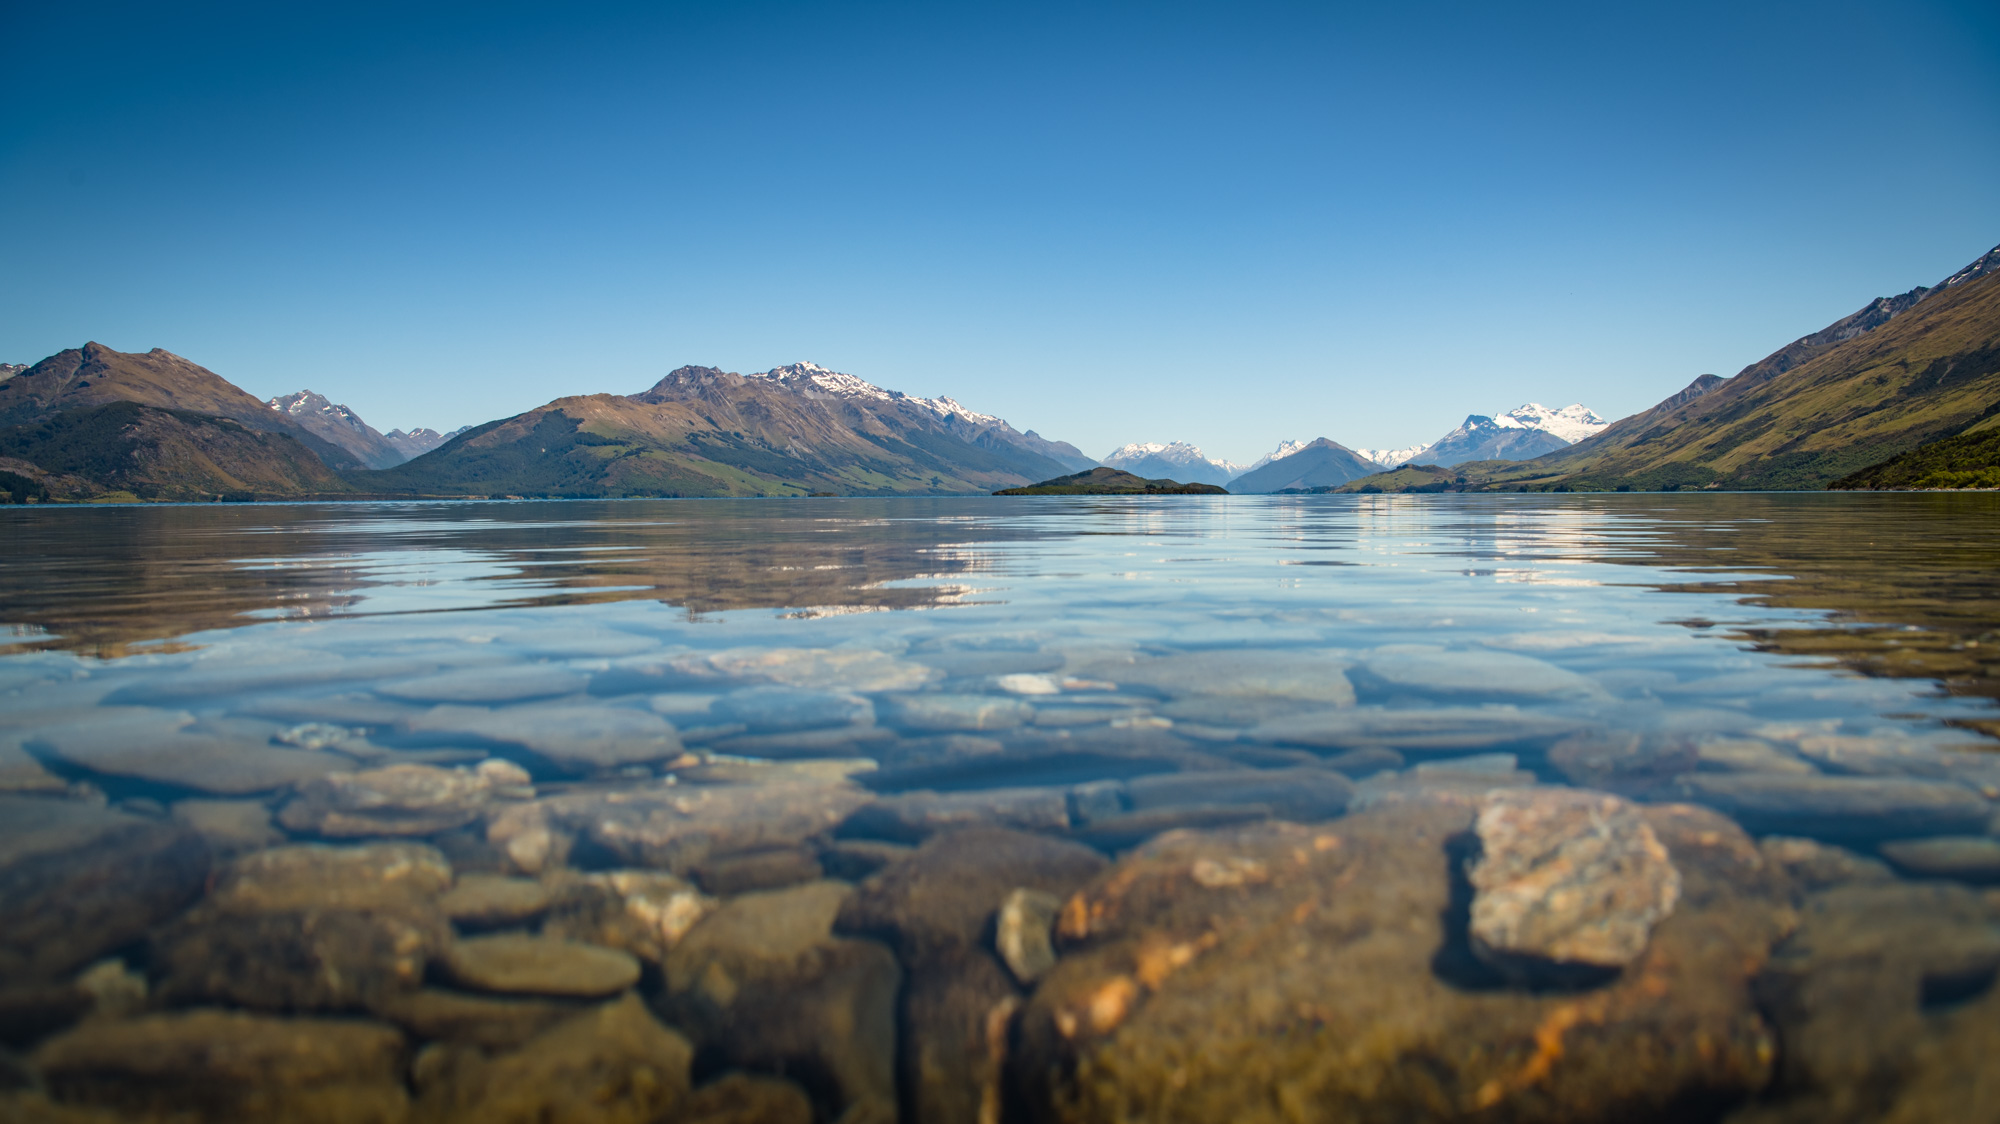 Lake Wakatipu - Queenstown New Zealand Points of Interest